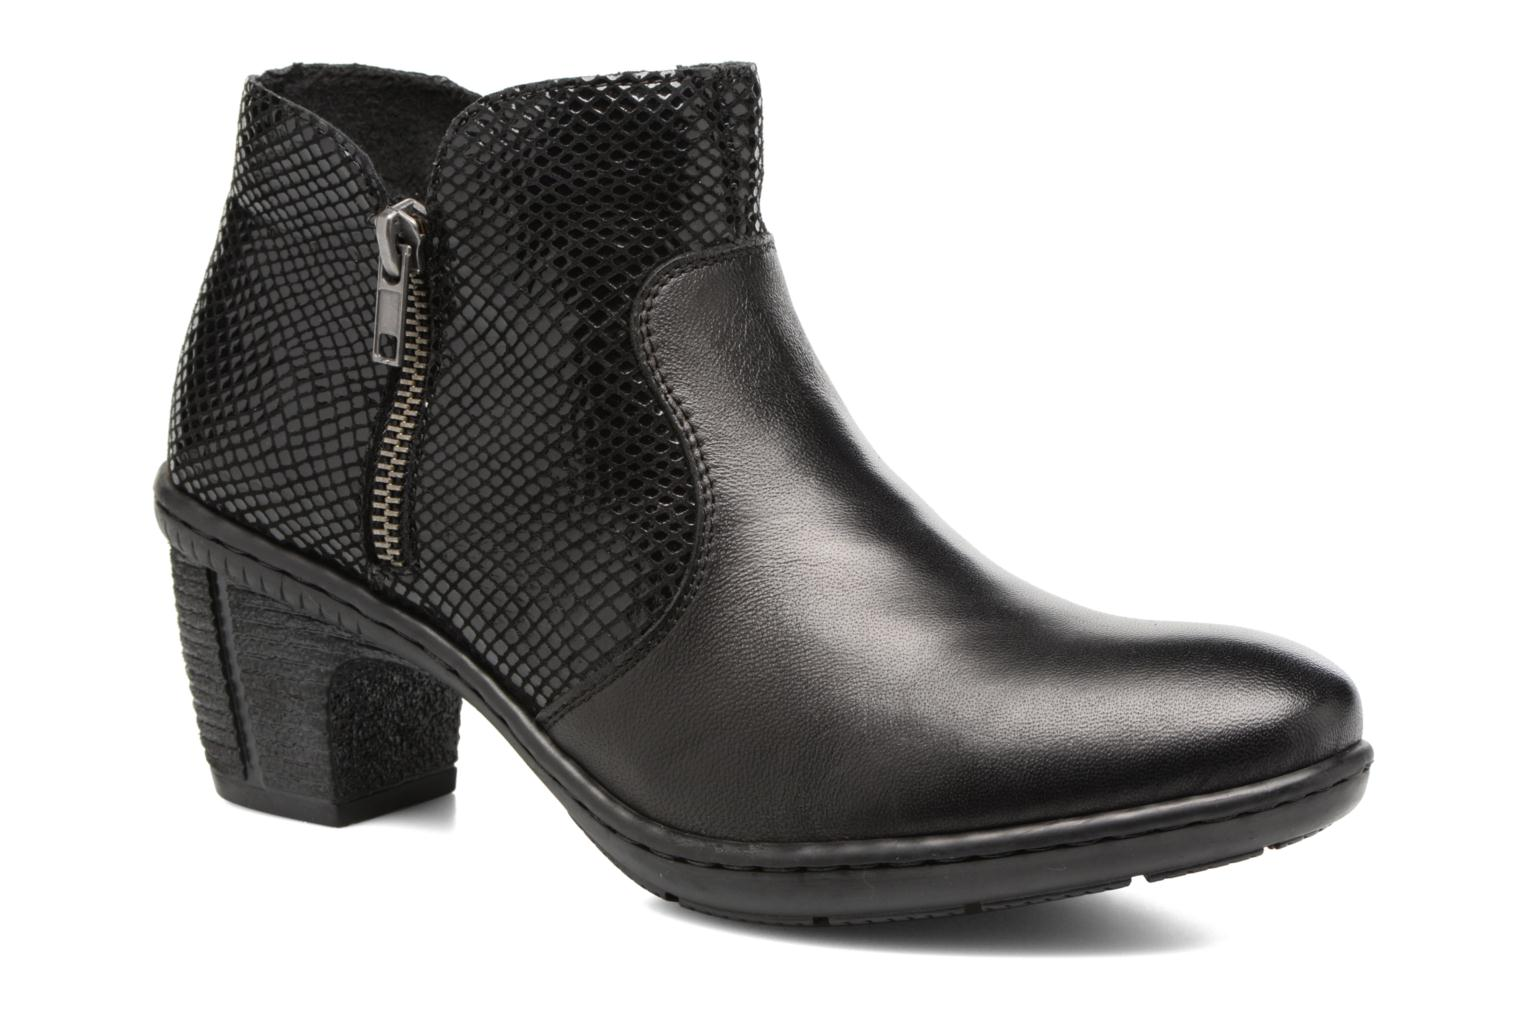 bottines / low boots y1553-01 femme rieker y1553 i1TFR